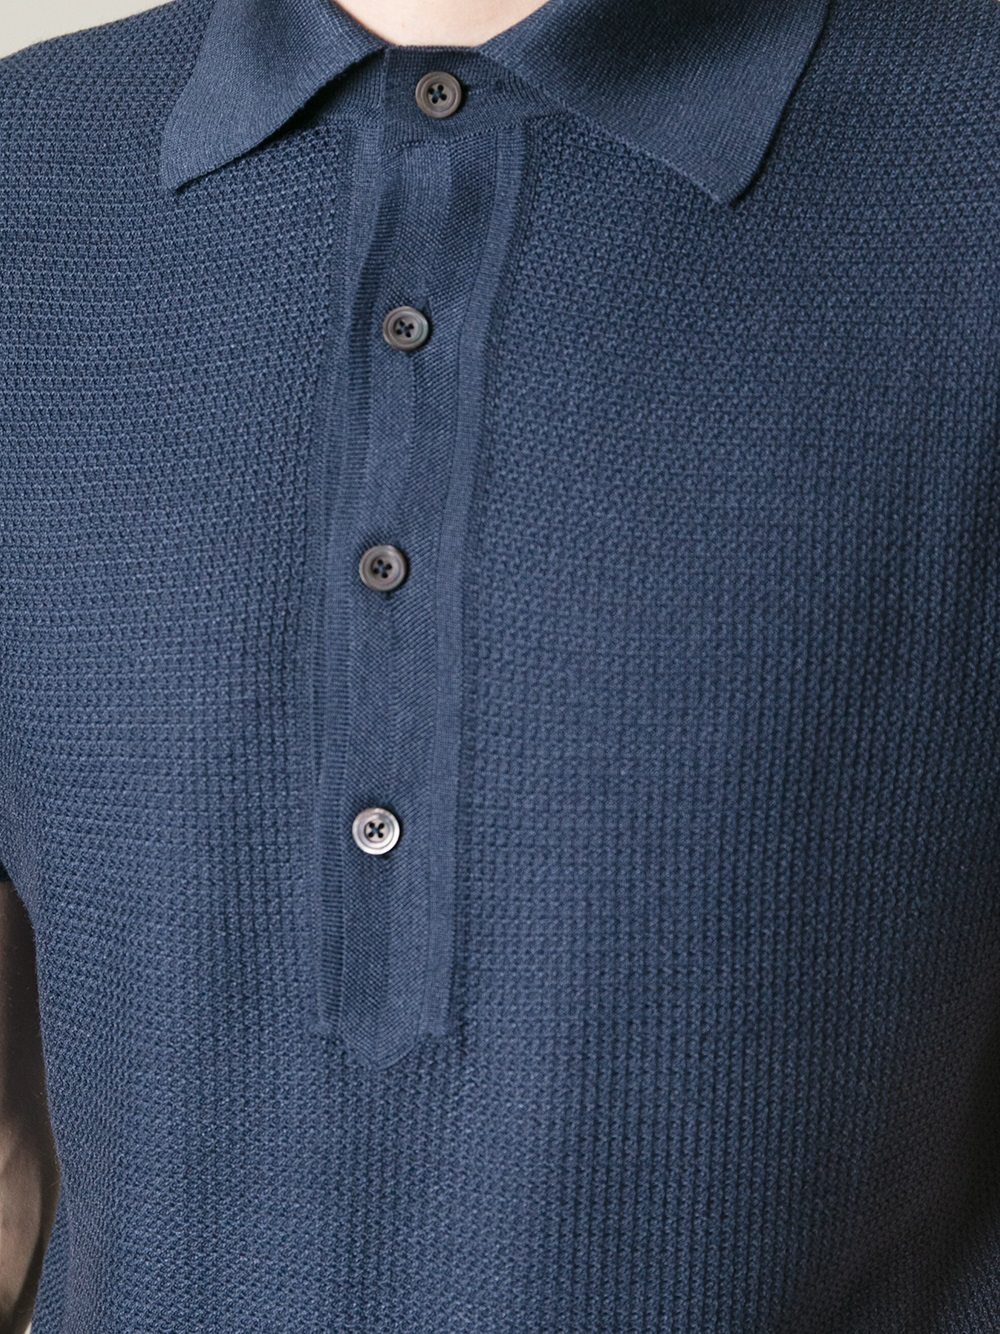 Lyst Tom Ford Textured Polo Shirt In Blue For Men